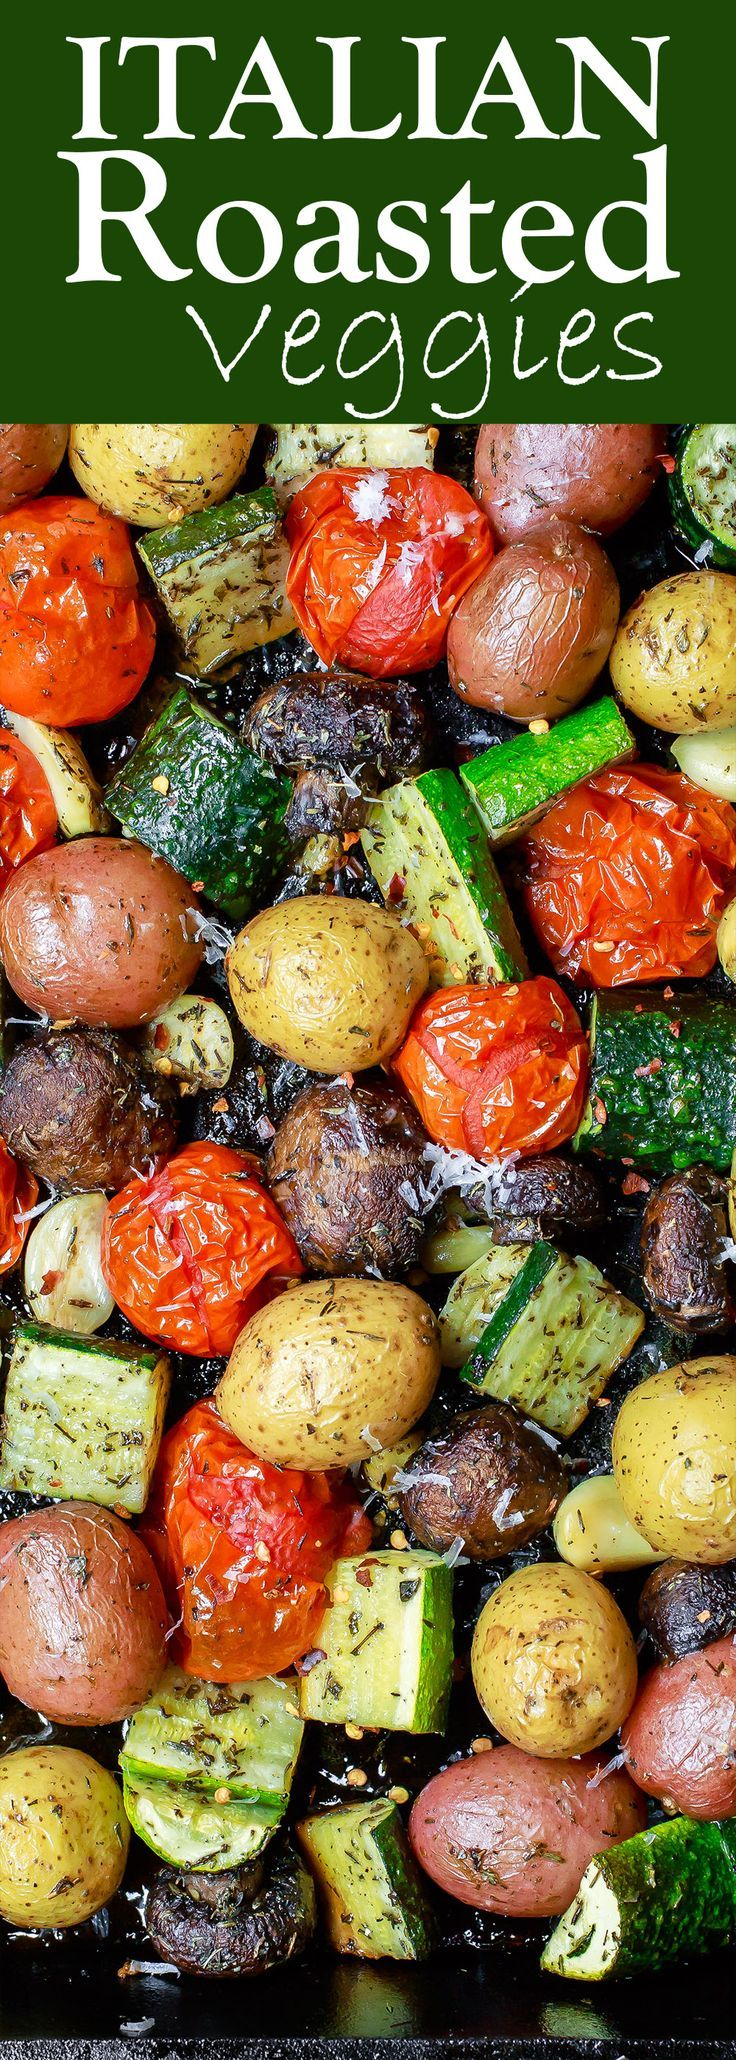 Italian Oven Roasted Vegetables | The Mediterranean Dish. Simple and delicious oven roasted vegetables, the Italian way! Not your average side dish! These veggies will be your new favorite! Comes together in 20 mins or so. See the recipe on http://TheMediterraneanDish.com